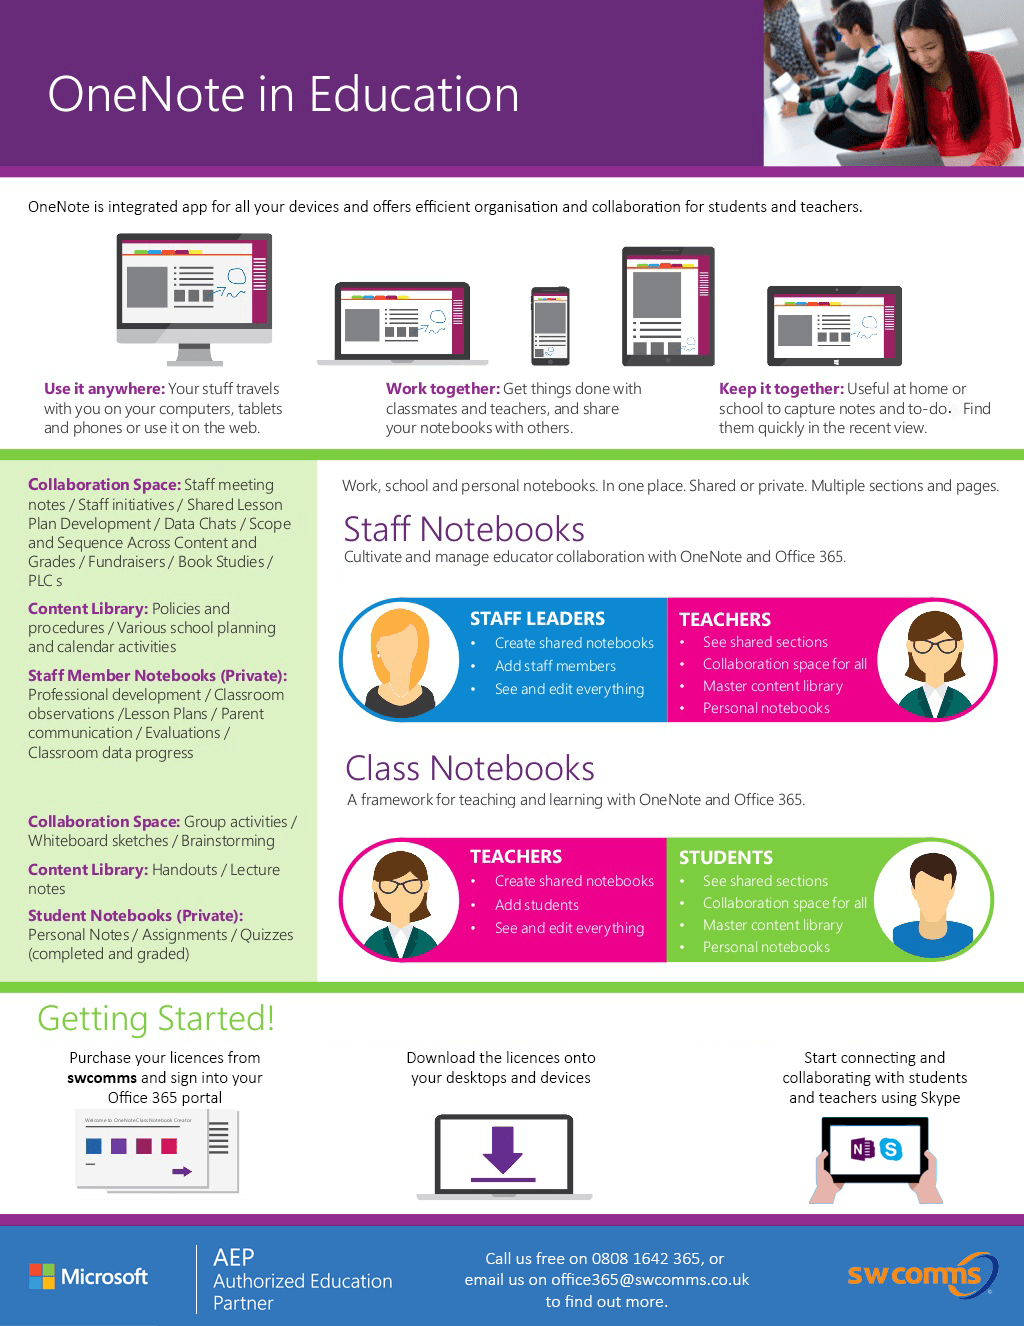 Microsoft OneNote: A hit with students and teachers